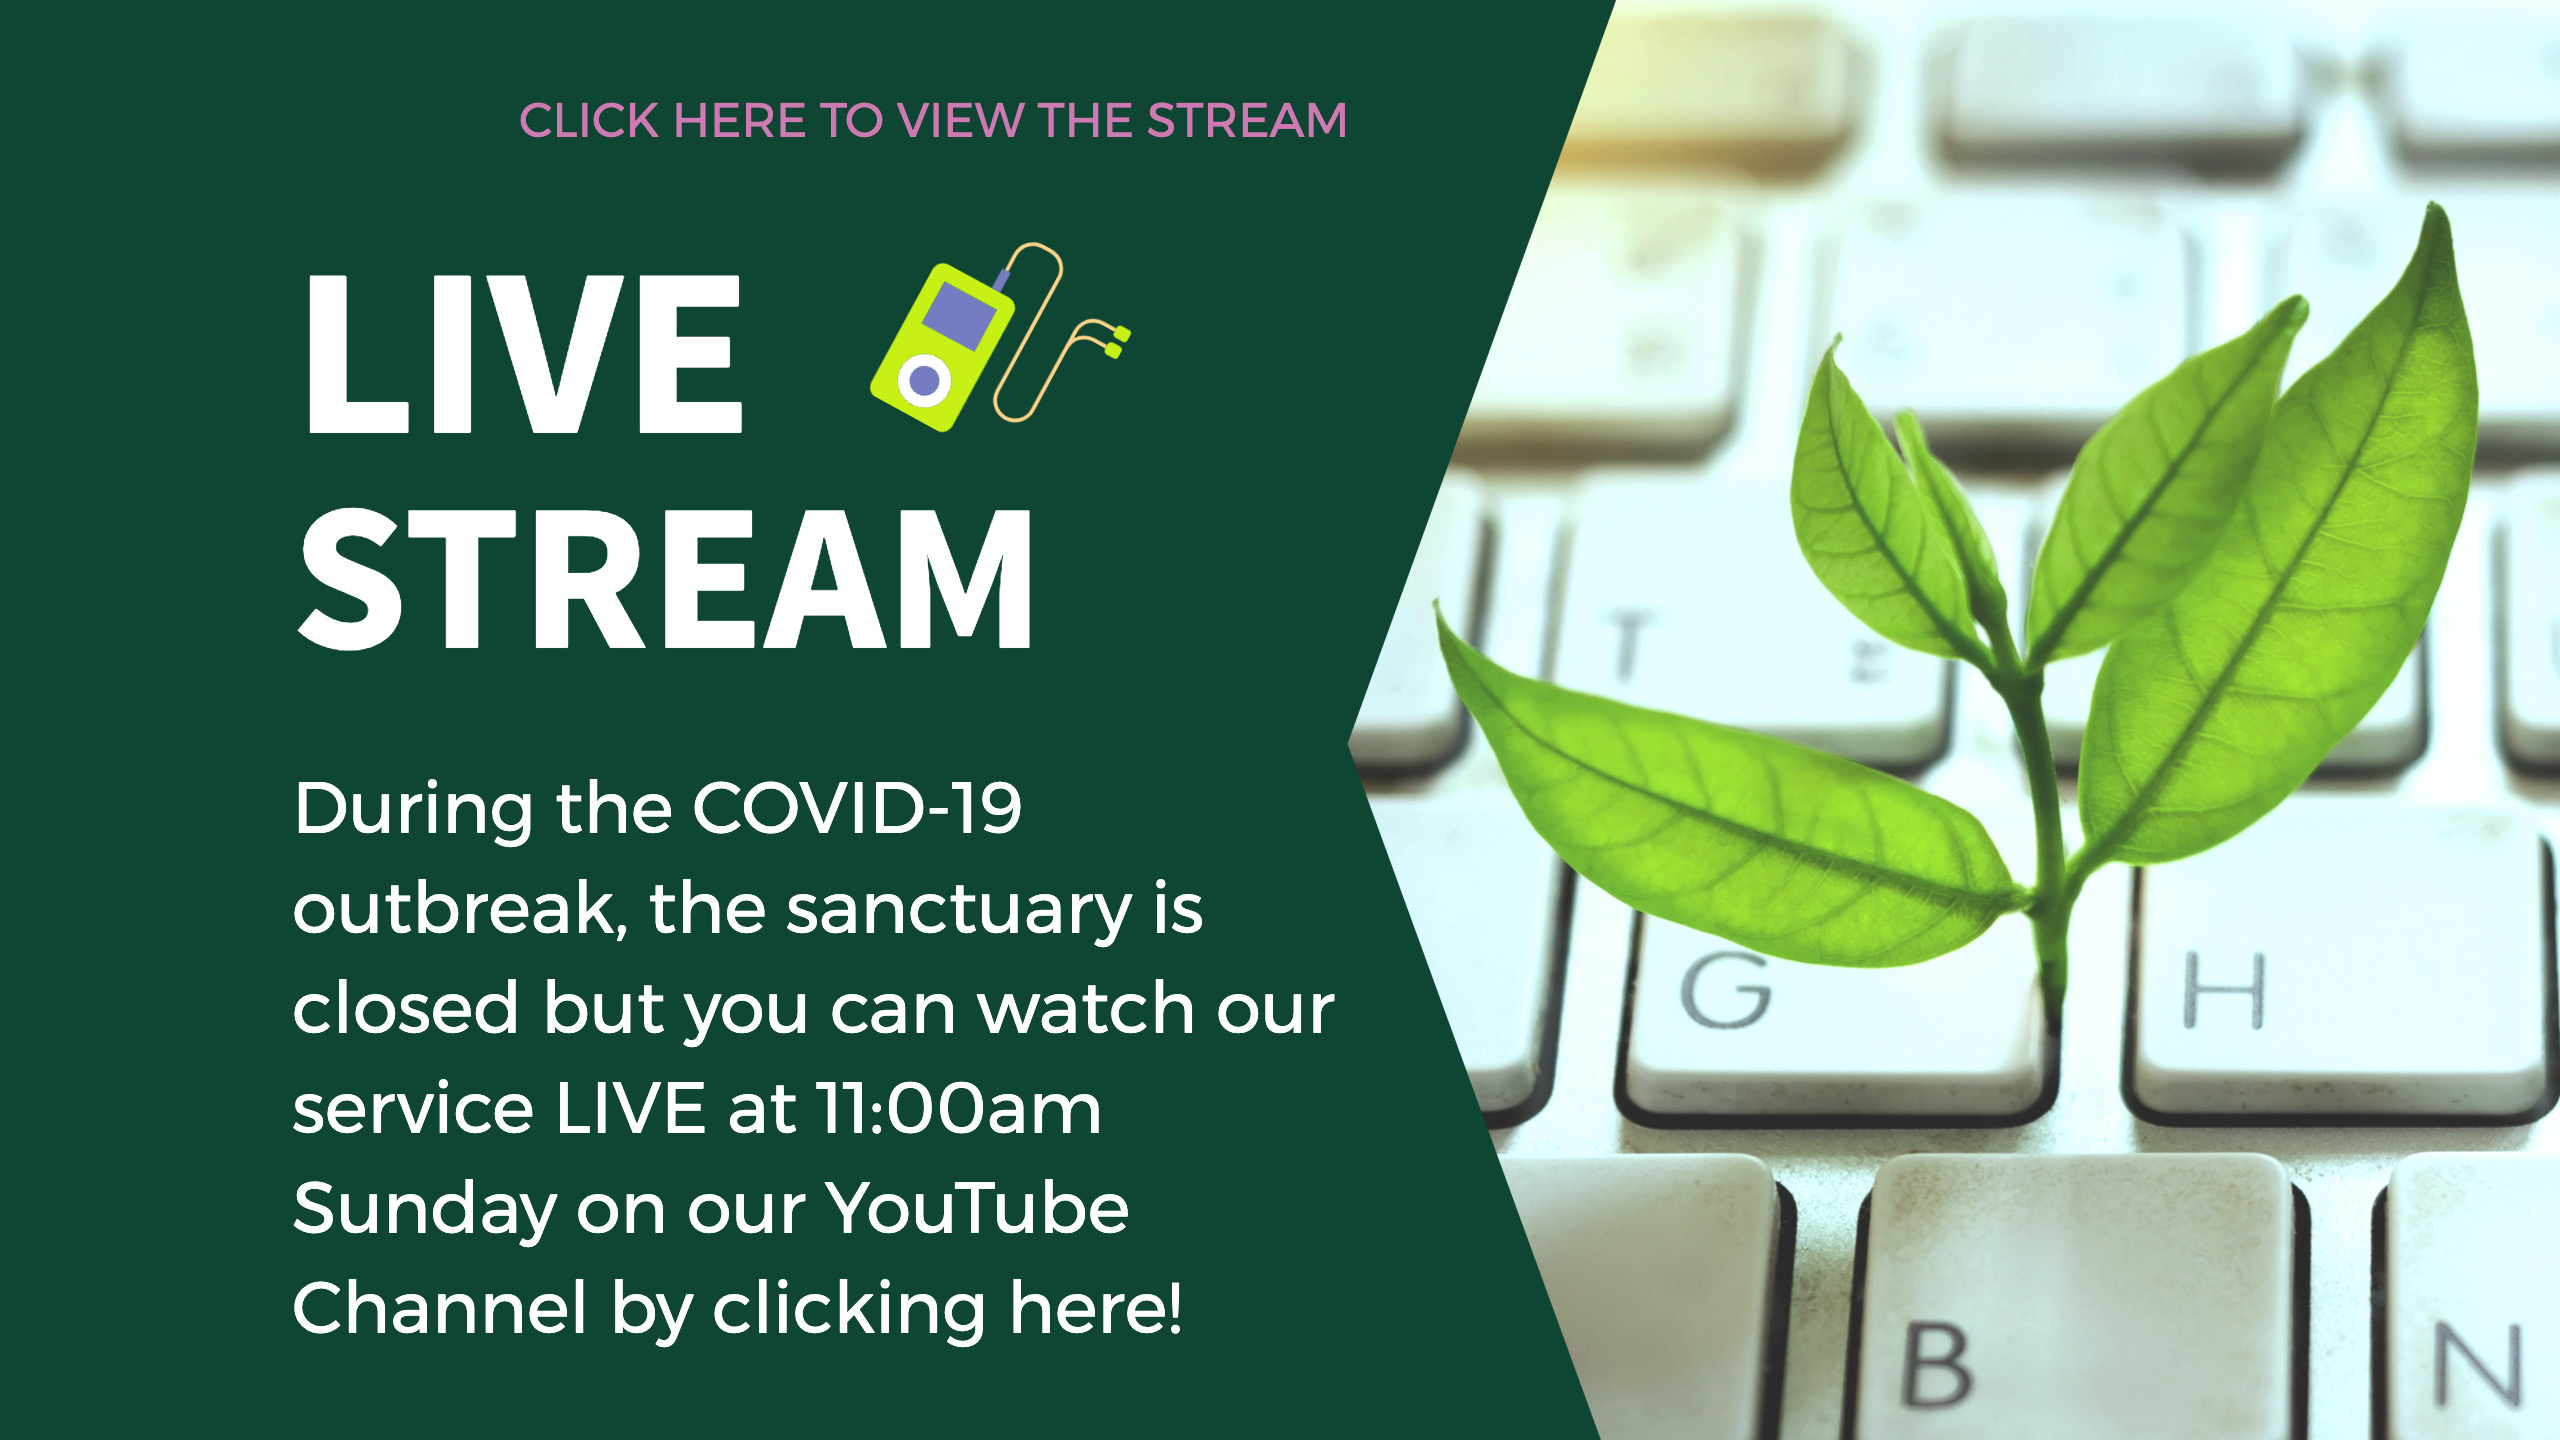 During the COVID-19 outbreak, the sanctuary is closed but you can watch our service LIVE at 11:00 am Sunday on our YouTube Channel by clicking here!